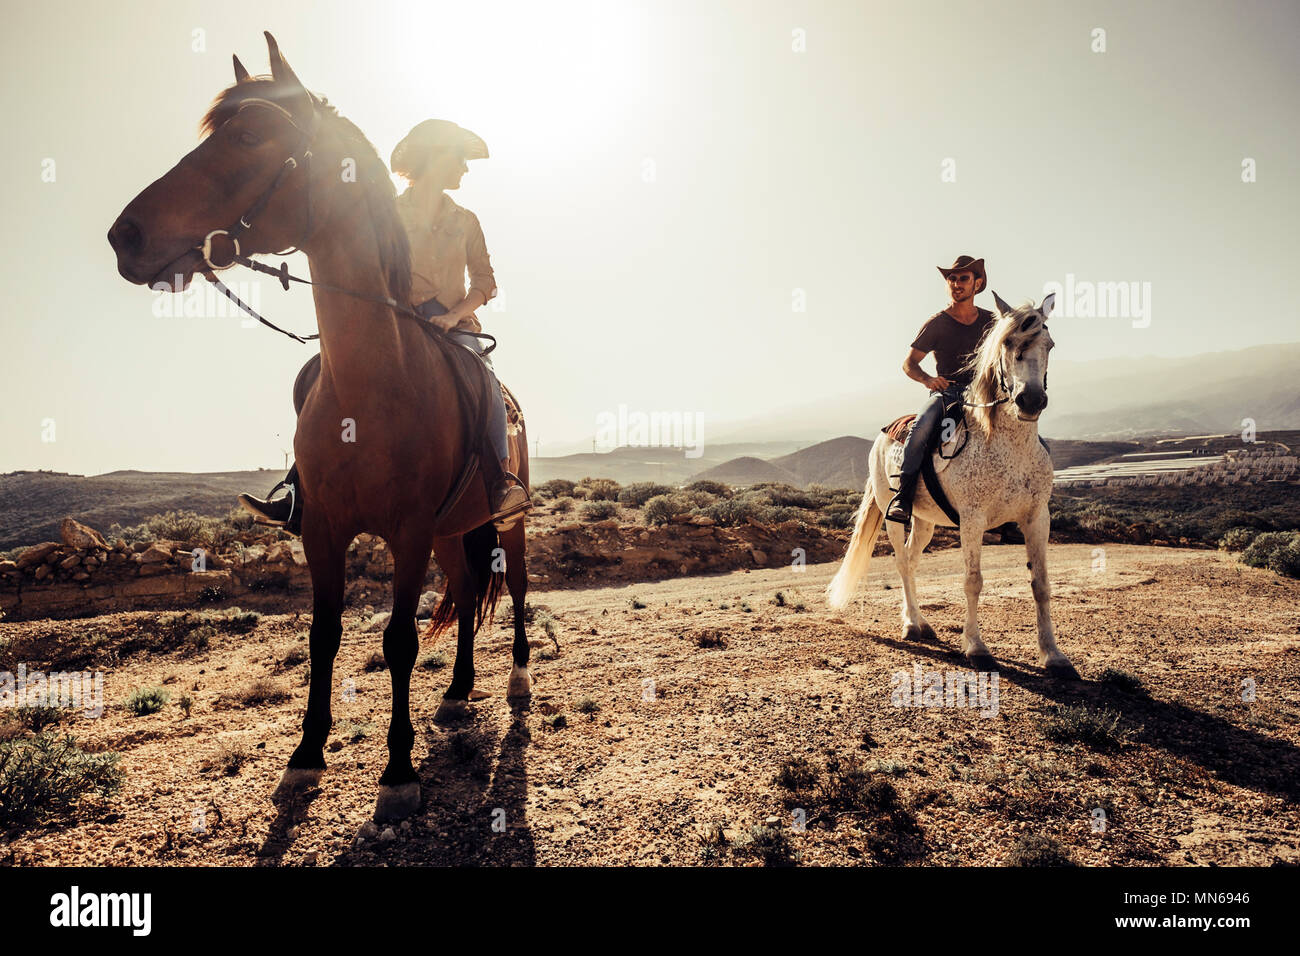 couple of horses and cowboys male and female ride free in the nature at the mountains in tenerife. lifestyle and alternative works or leisure activity - Stock Image